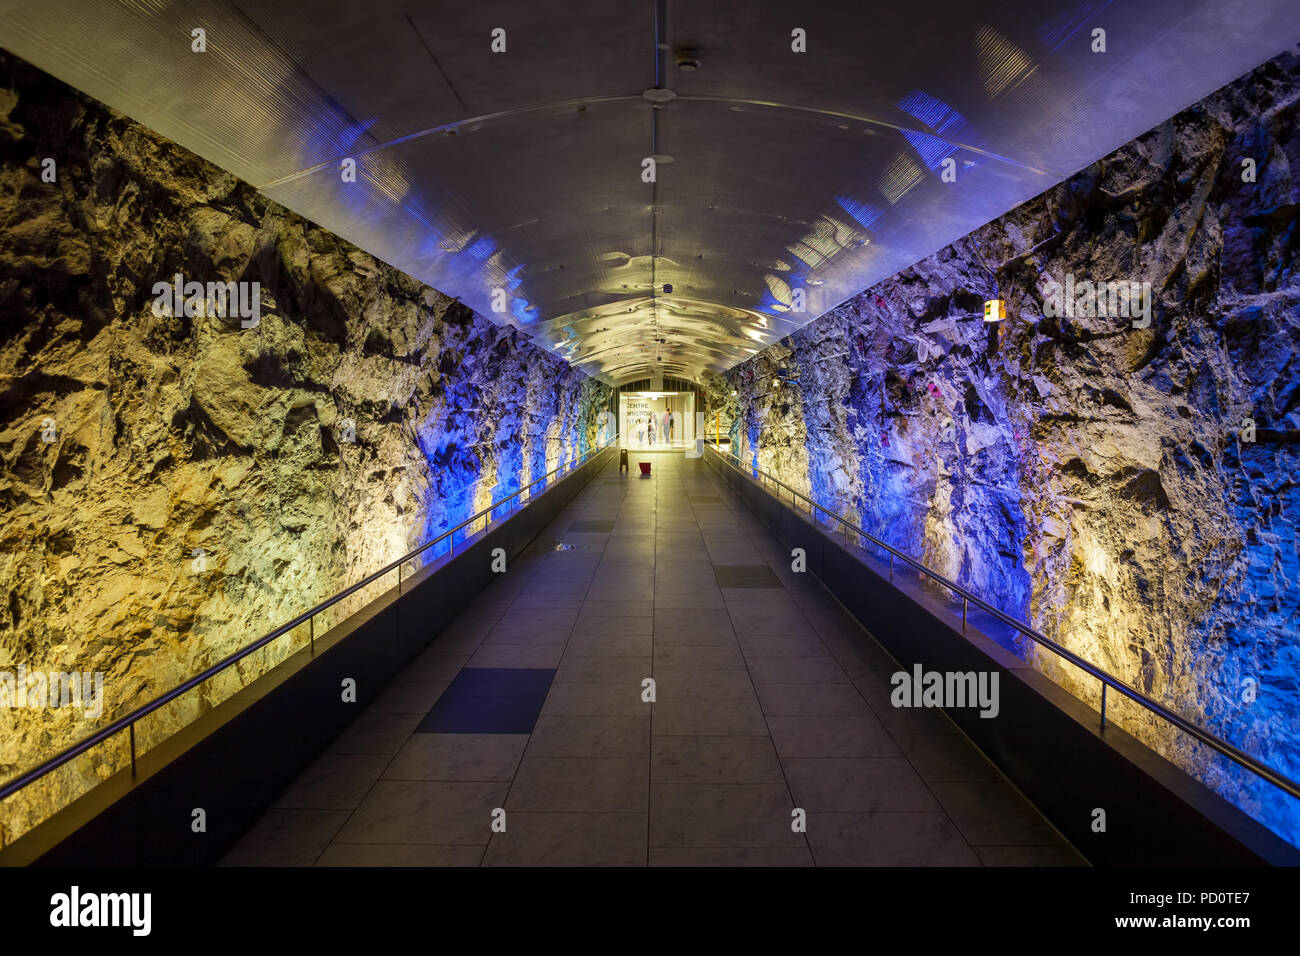 Underground passage to elevator under Monaco City, vanishing point composition - Stock Image